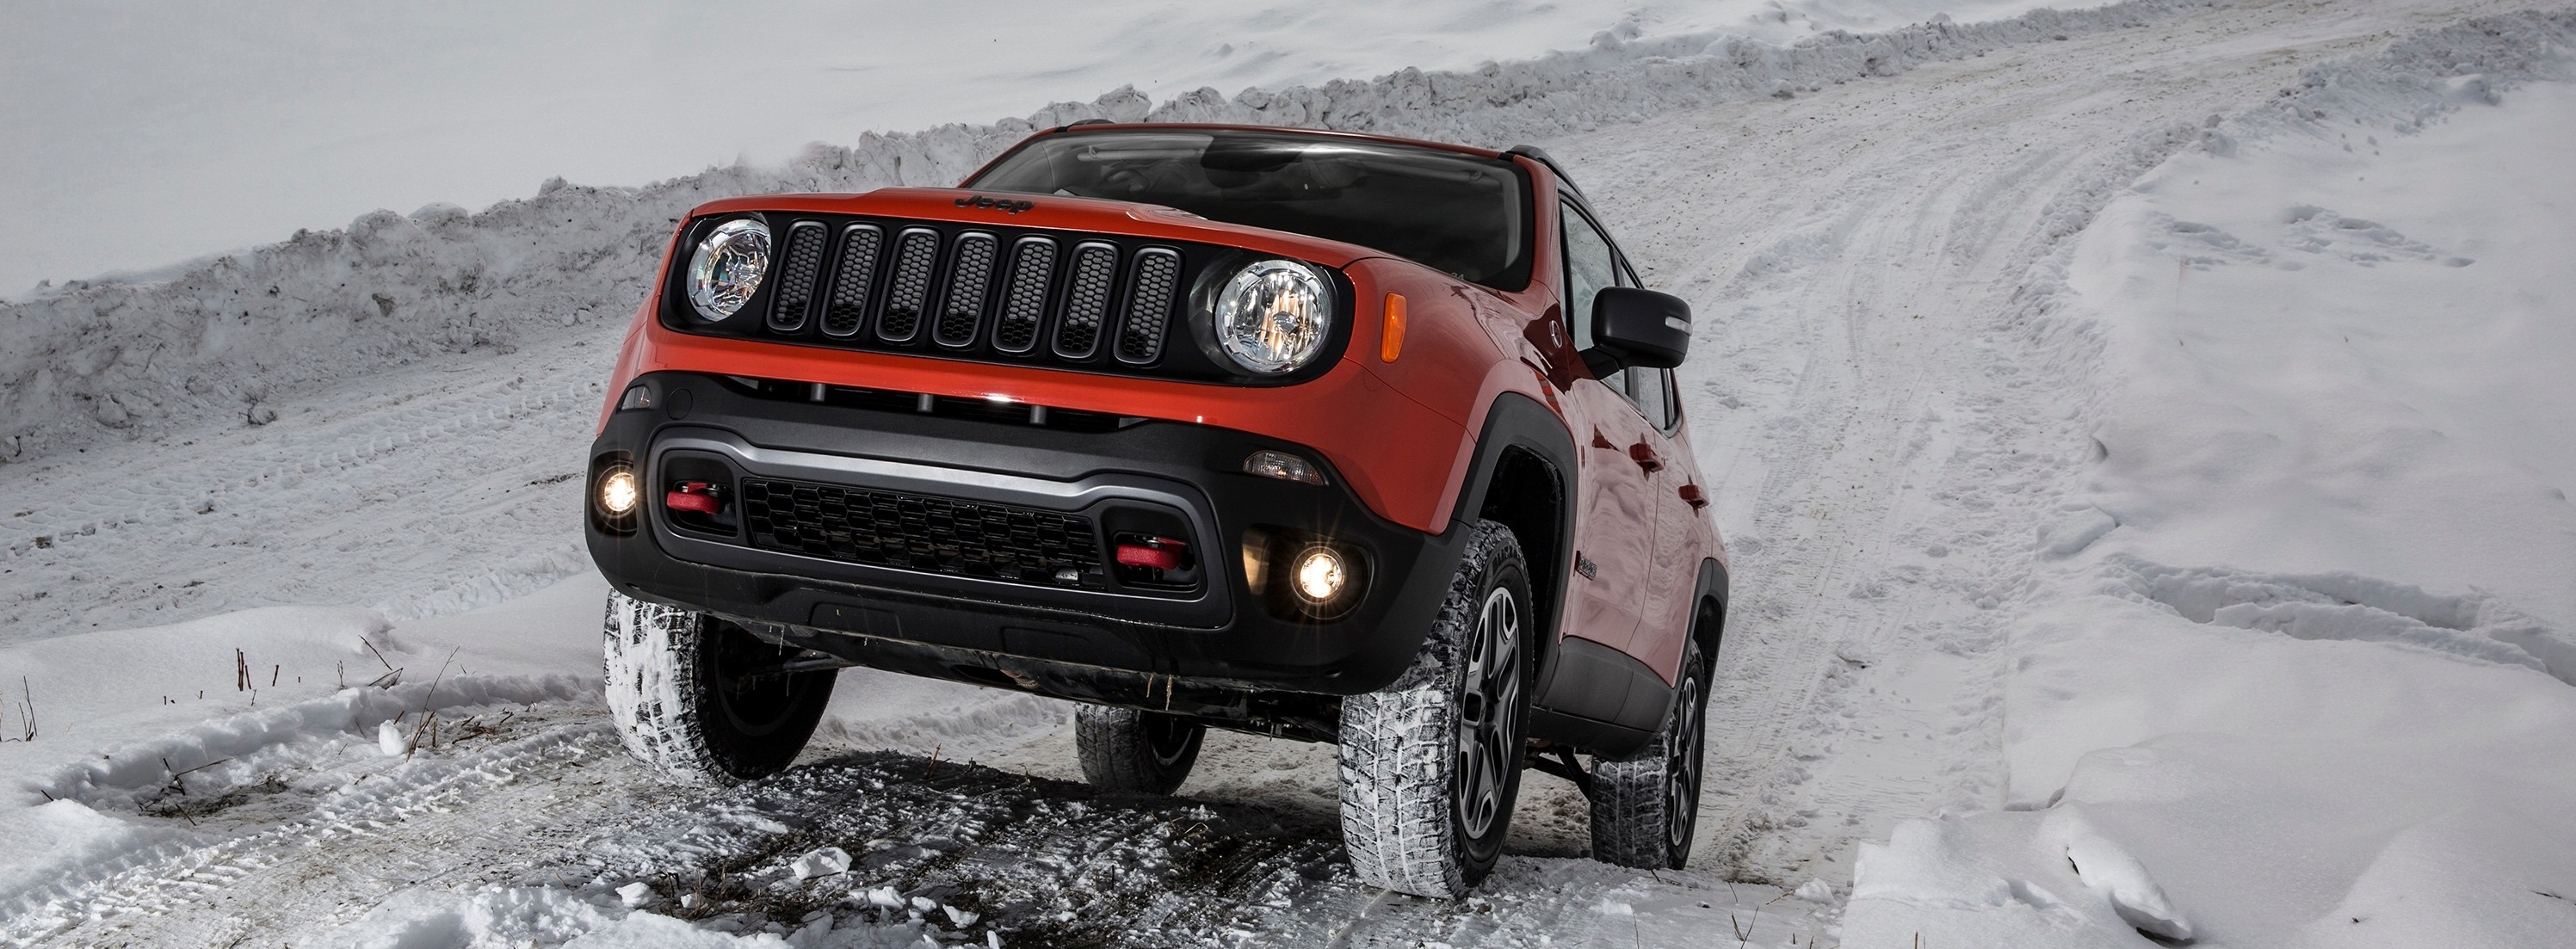 Jeep's AWD and 4WD Systems Explained - autoevolution